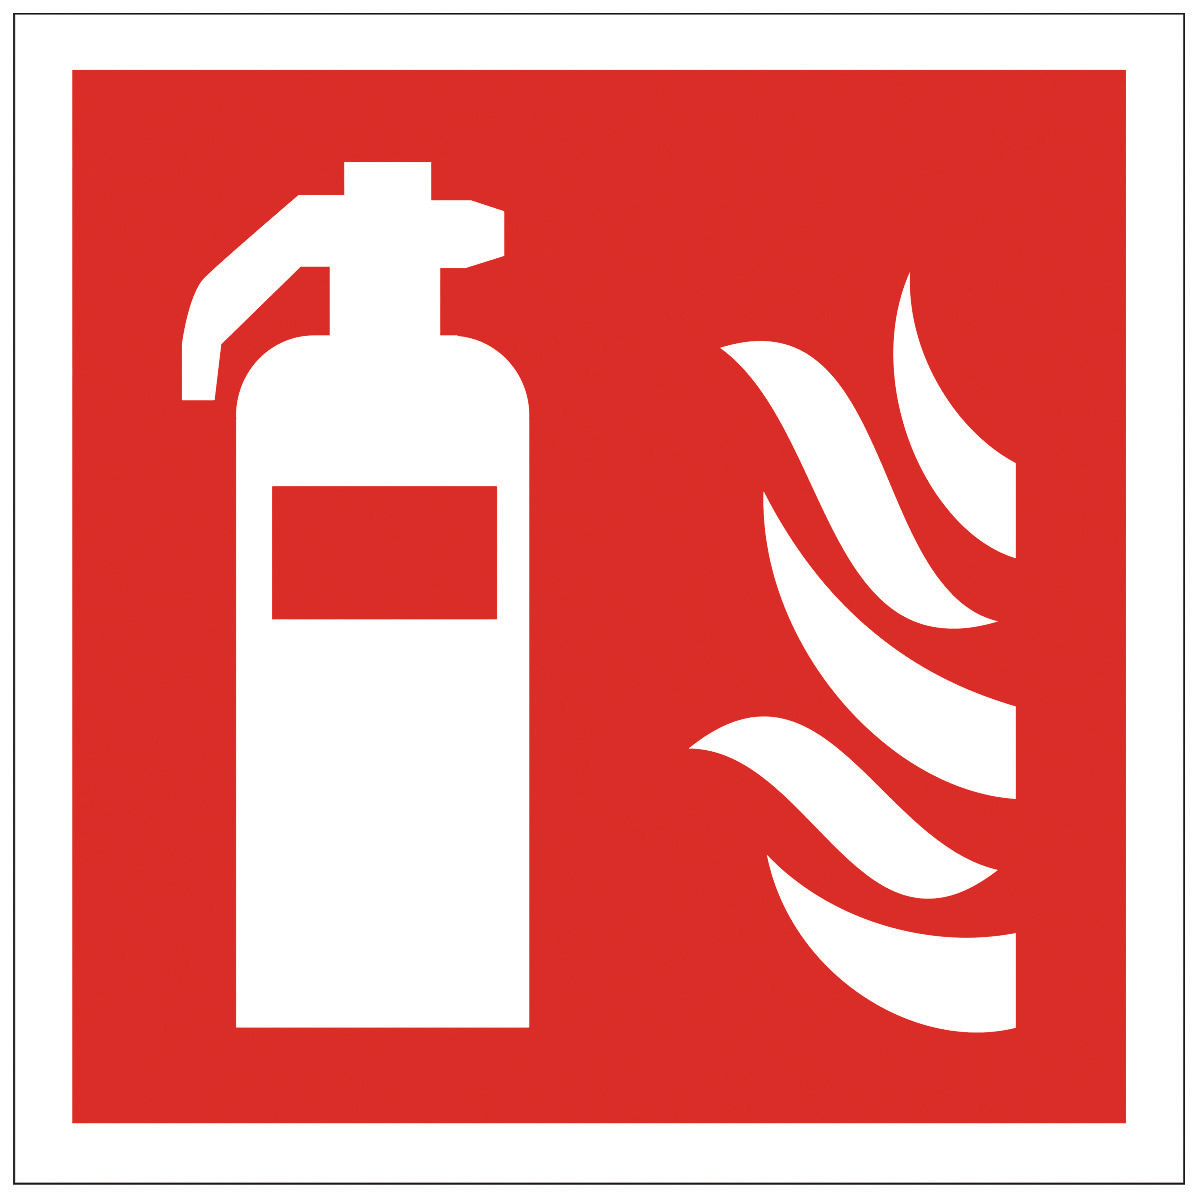 Fire Safety Signs Amp Symbols Clipart Best